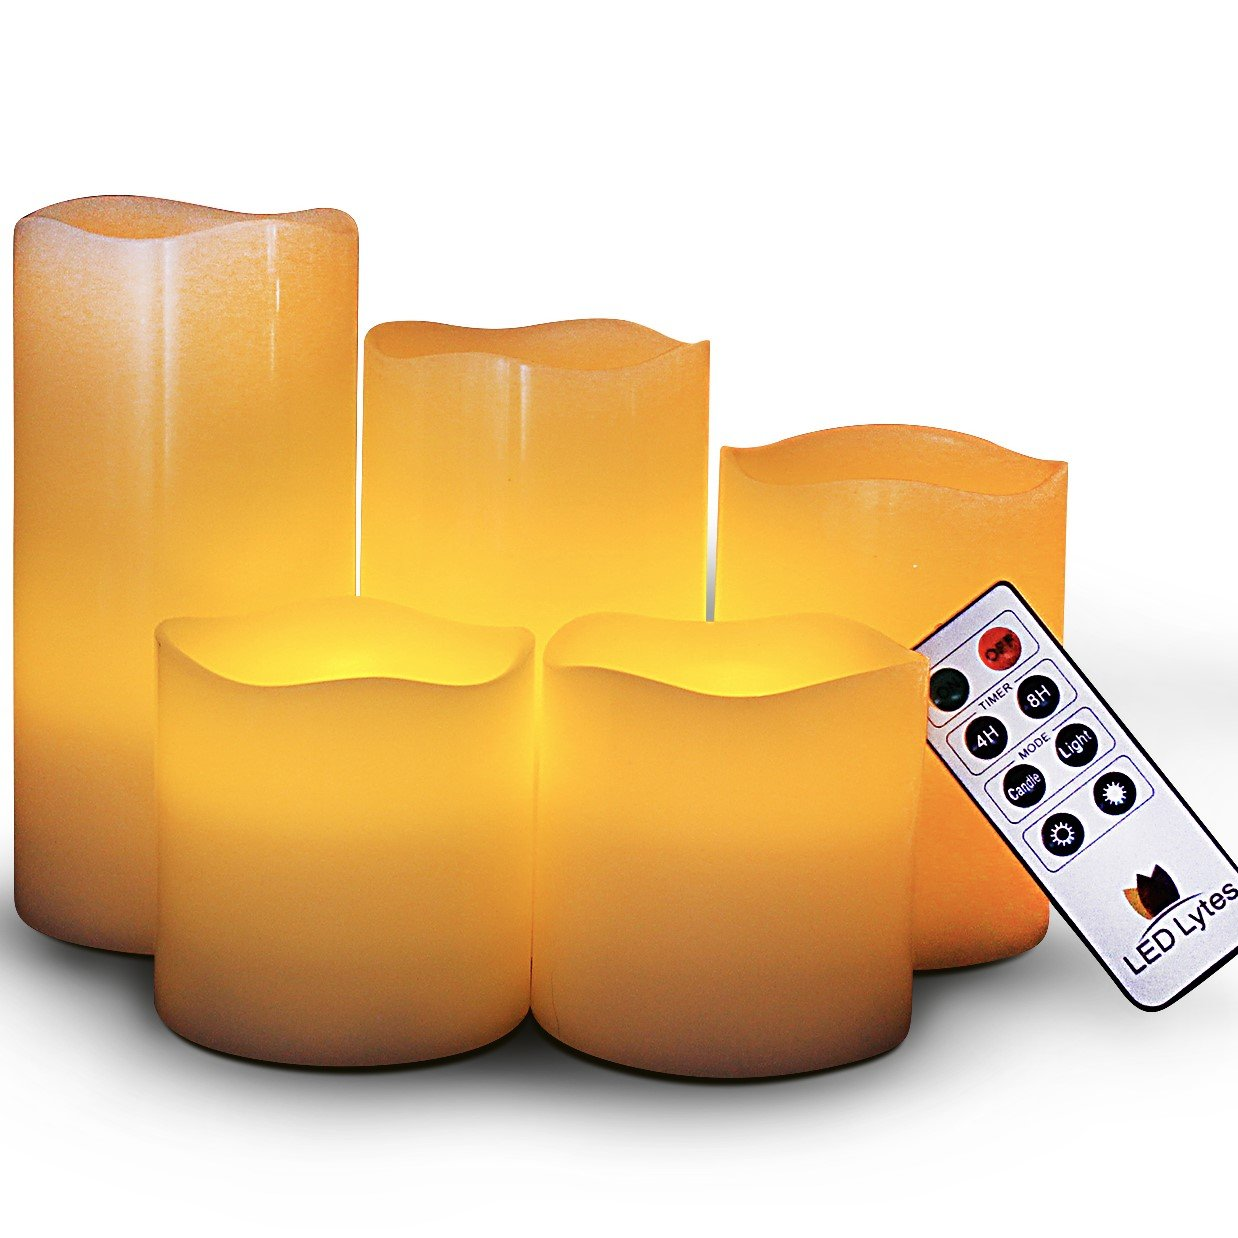 LED Lytes Battery Operated Candles - Large Flameless Candles Set of 5 Round Ivory Wax with Flickering Amber Yellow Flame, auto-Off Timer Remote Control Fake Candle by LED Lytes